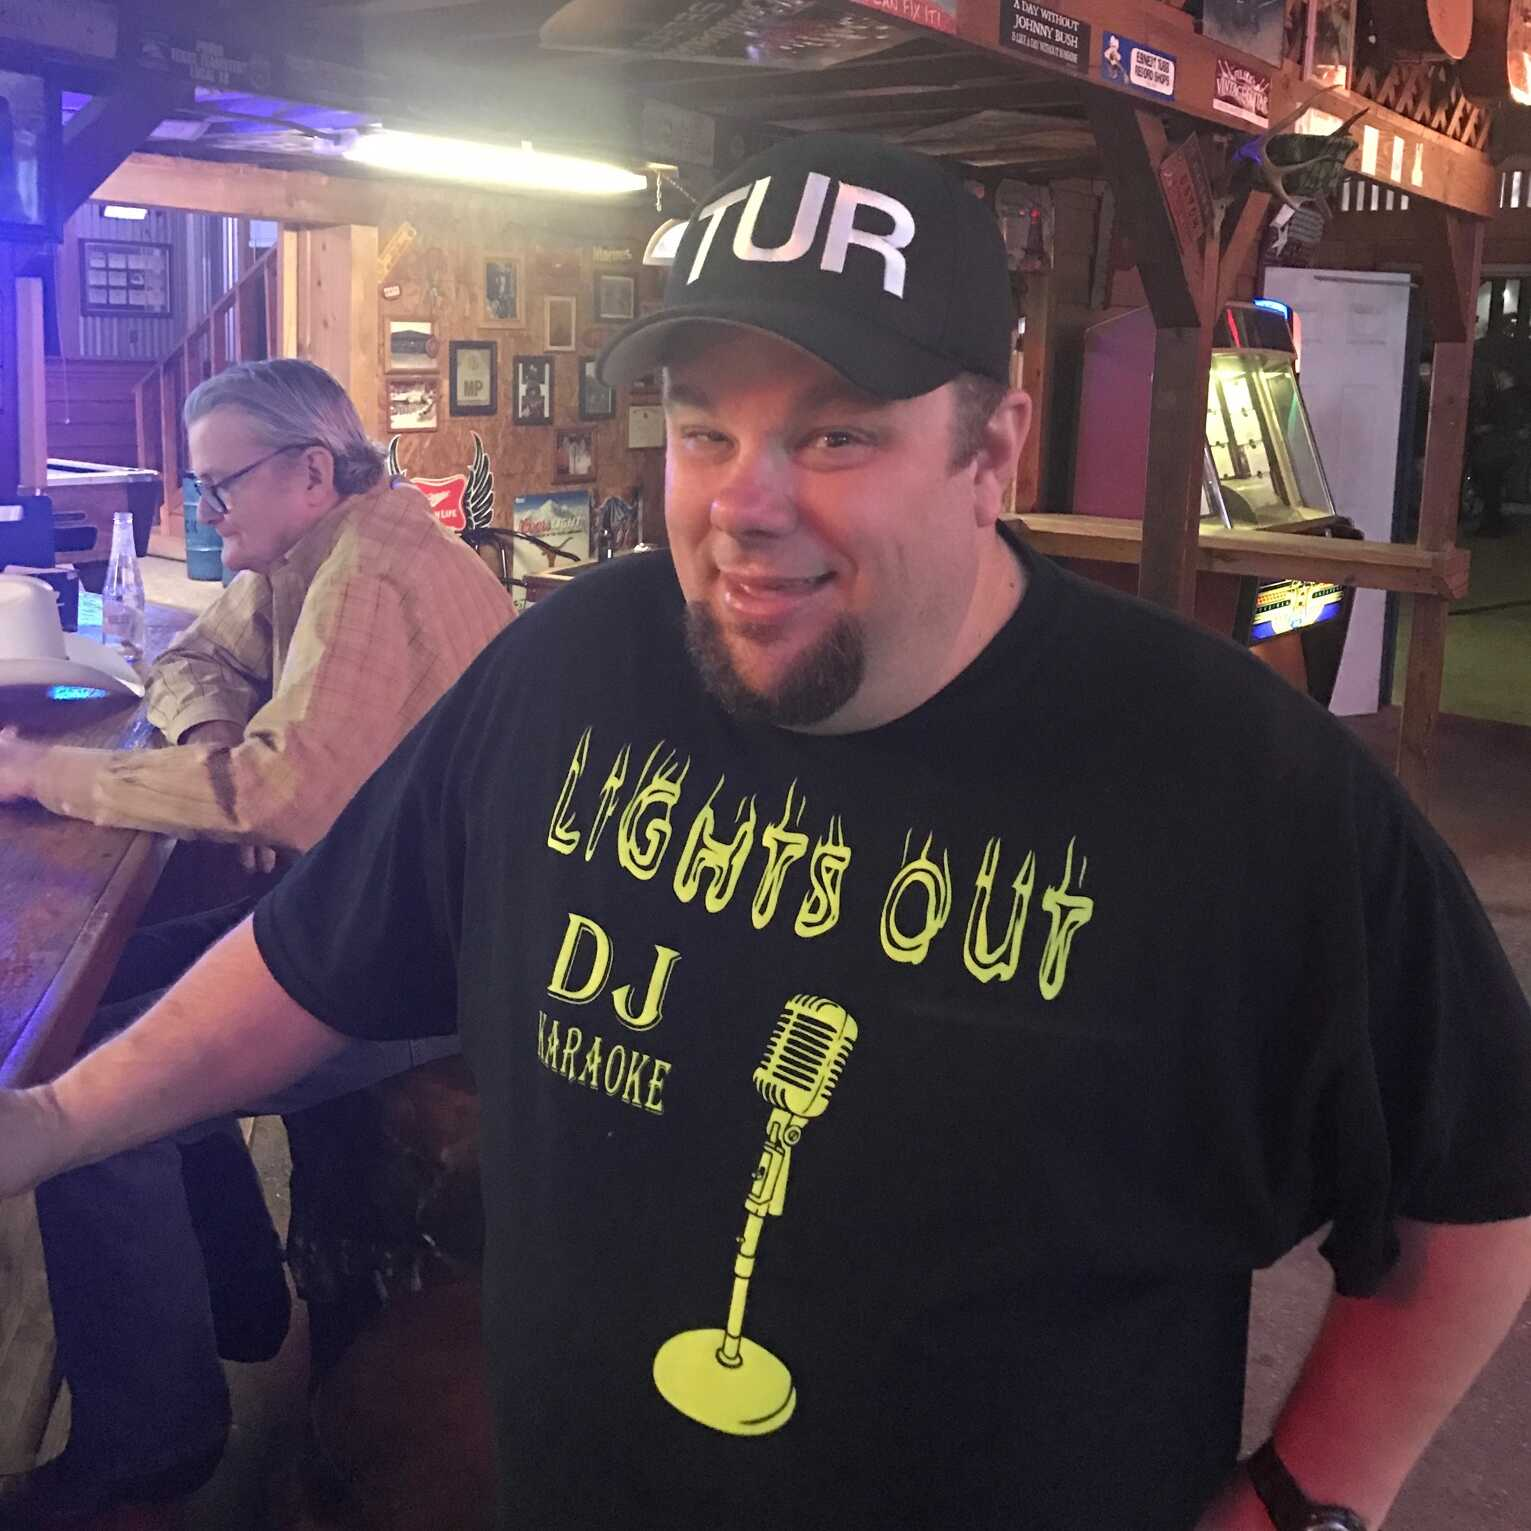 LIGHTS OUT DJ/KARAOKE, profile image